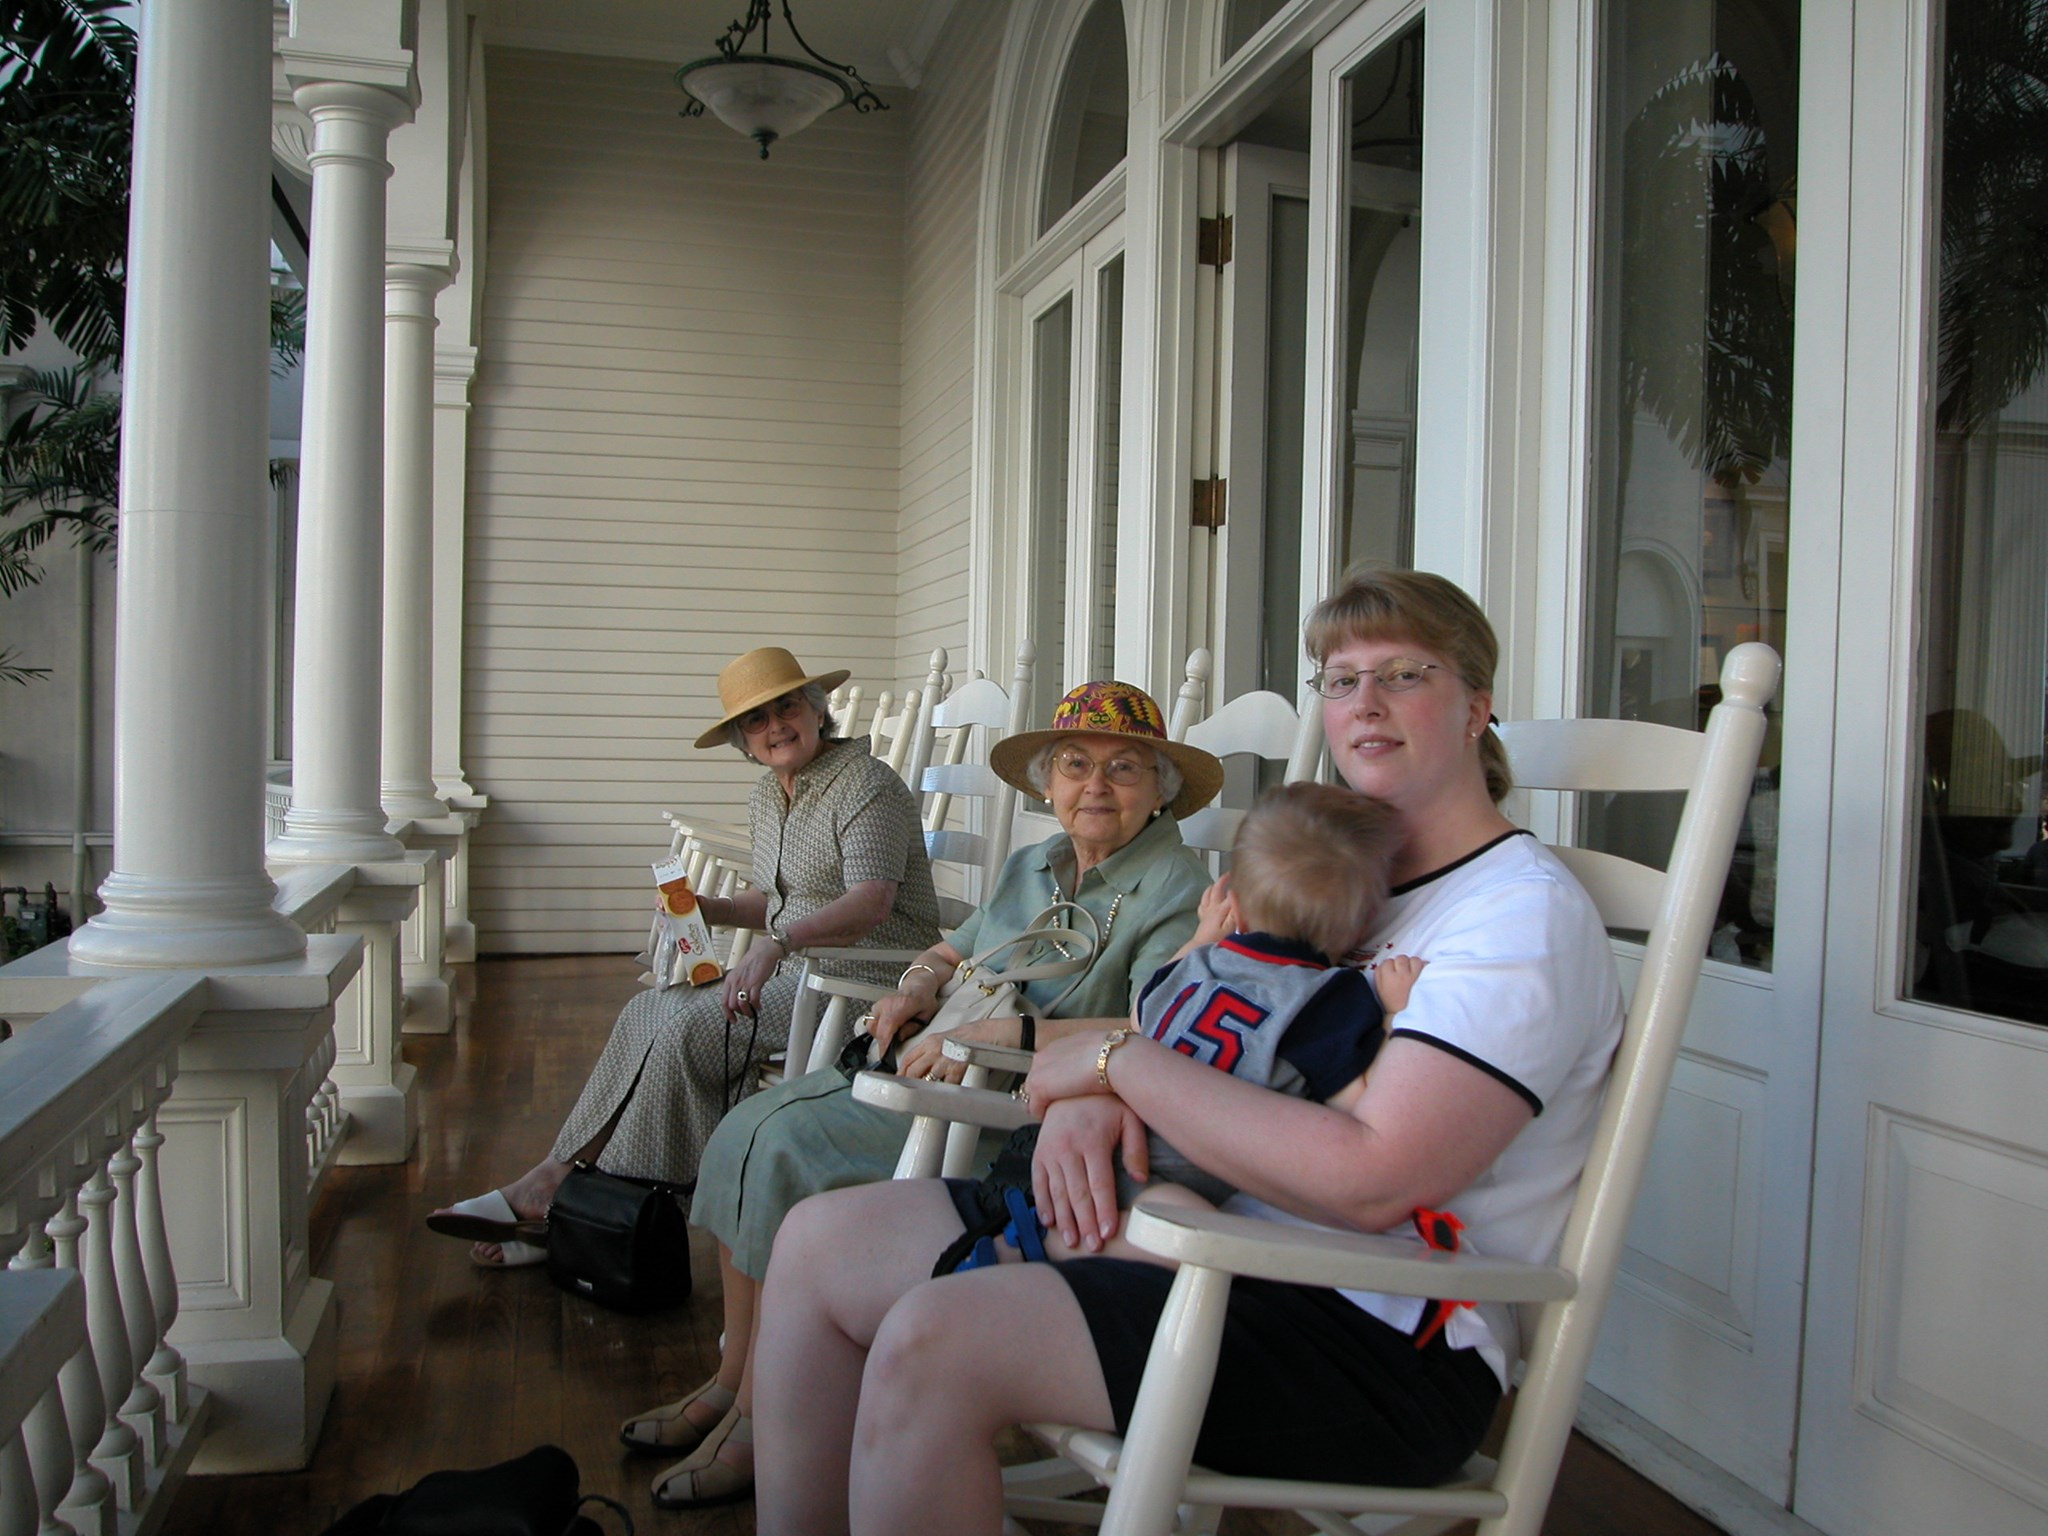 2003 January: Relaxing on the Terrace at the Moana Surfrider in Honolulu, Hawaii